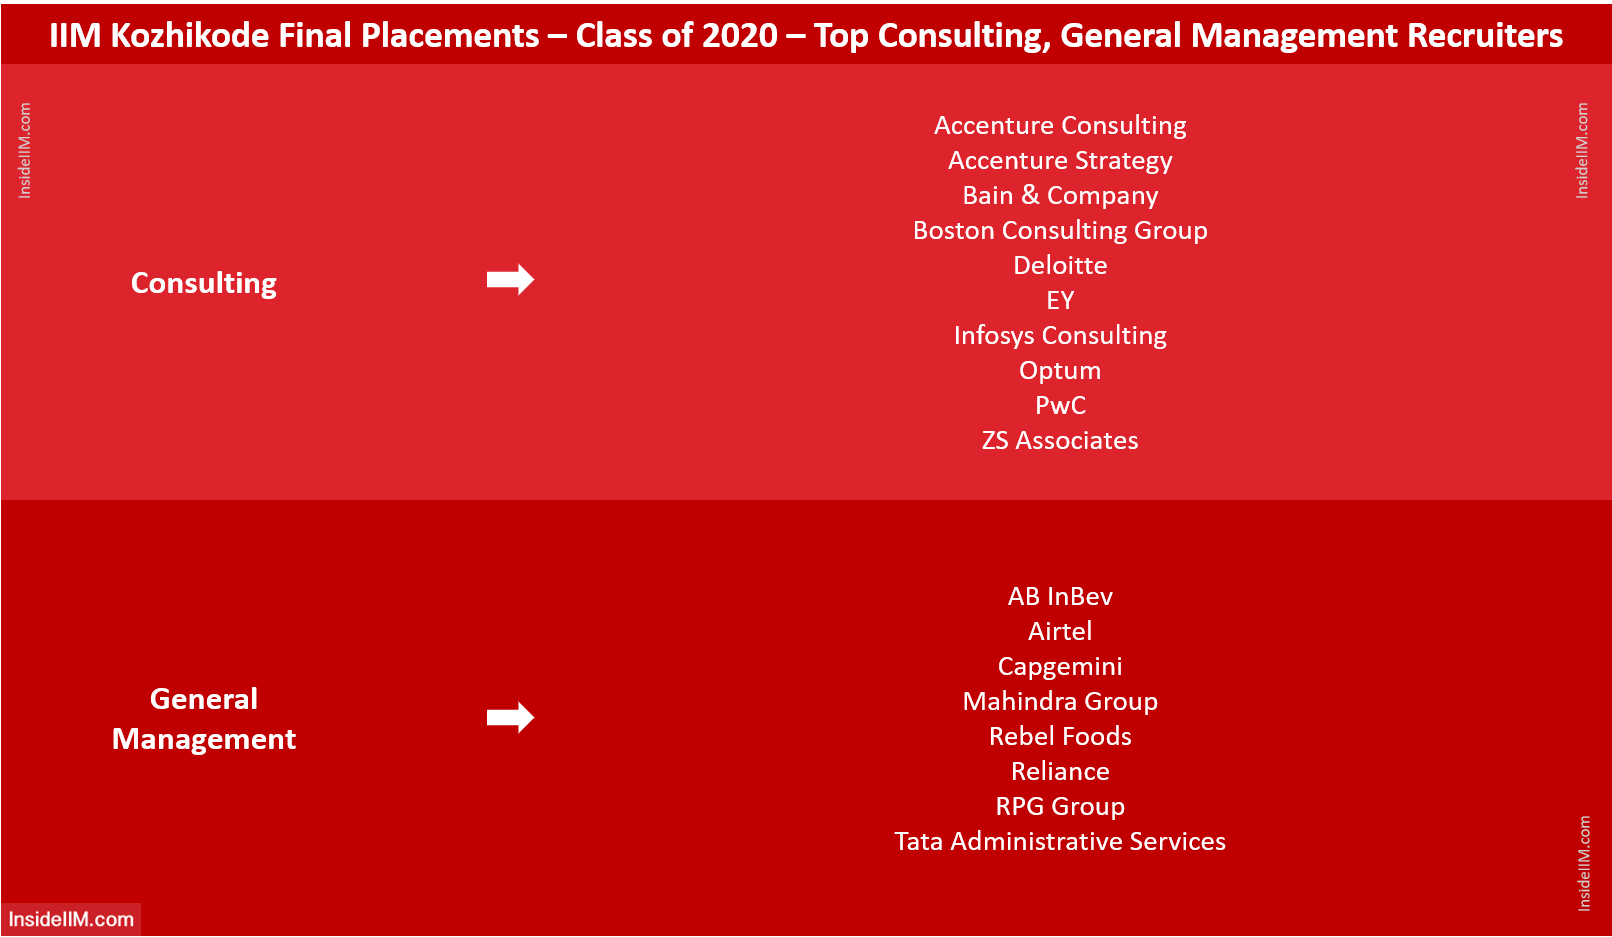 IIM Kozhikode Final Placements 2020 - Top Consulting, General Management Recruiters